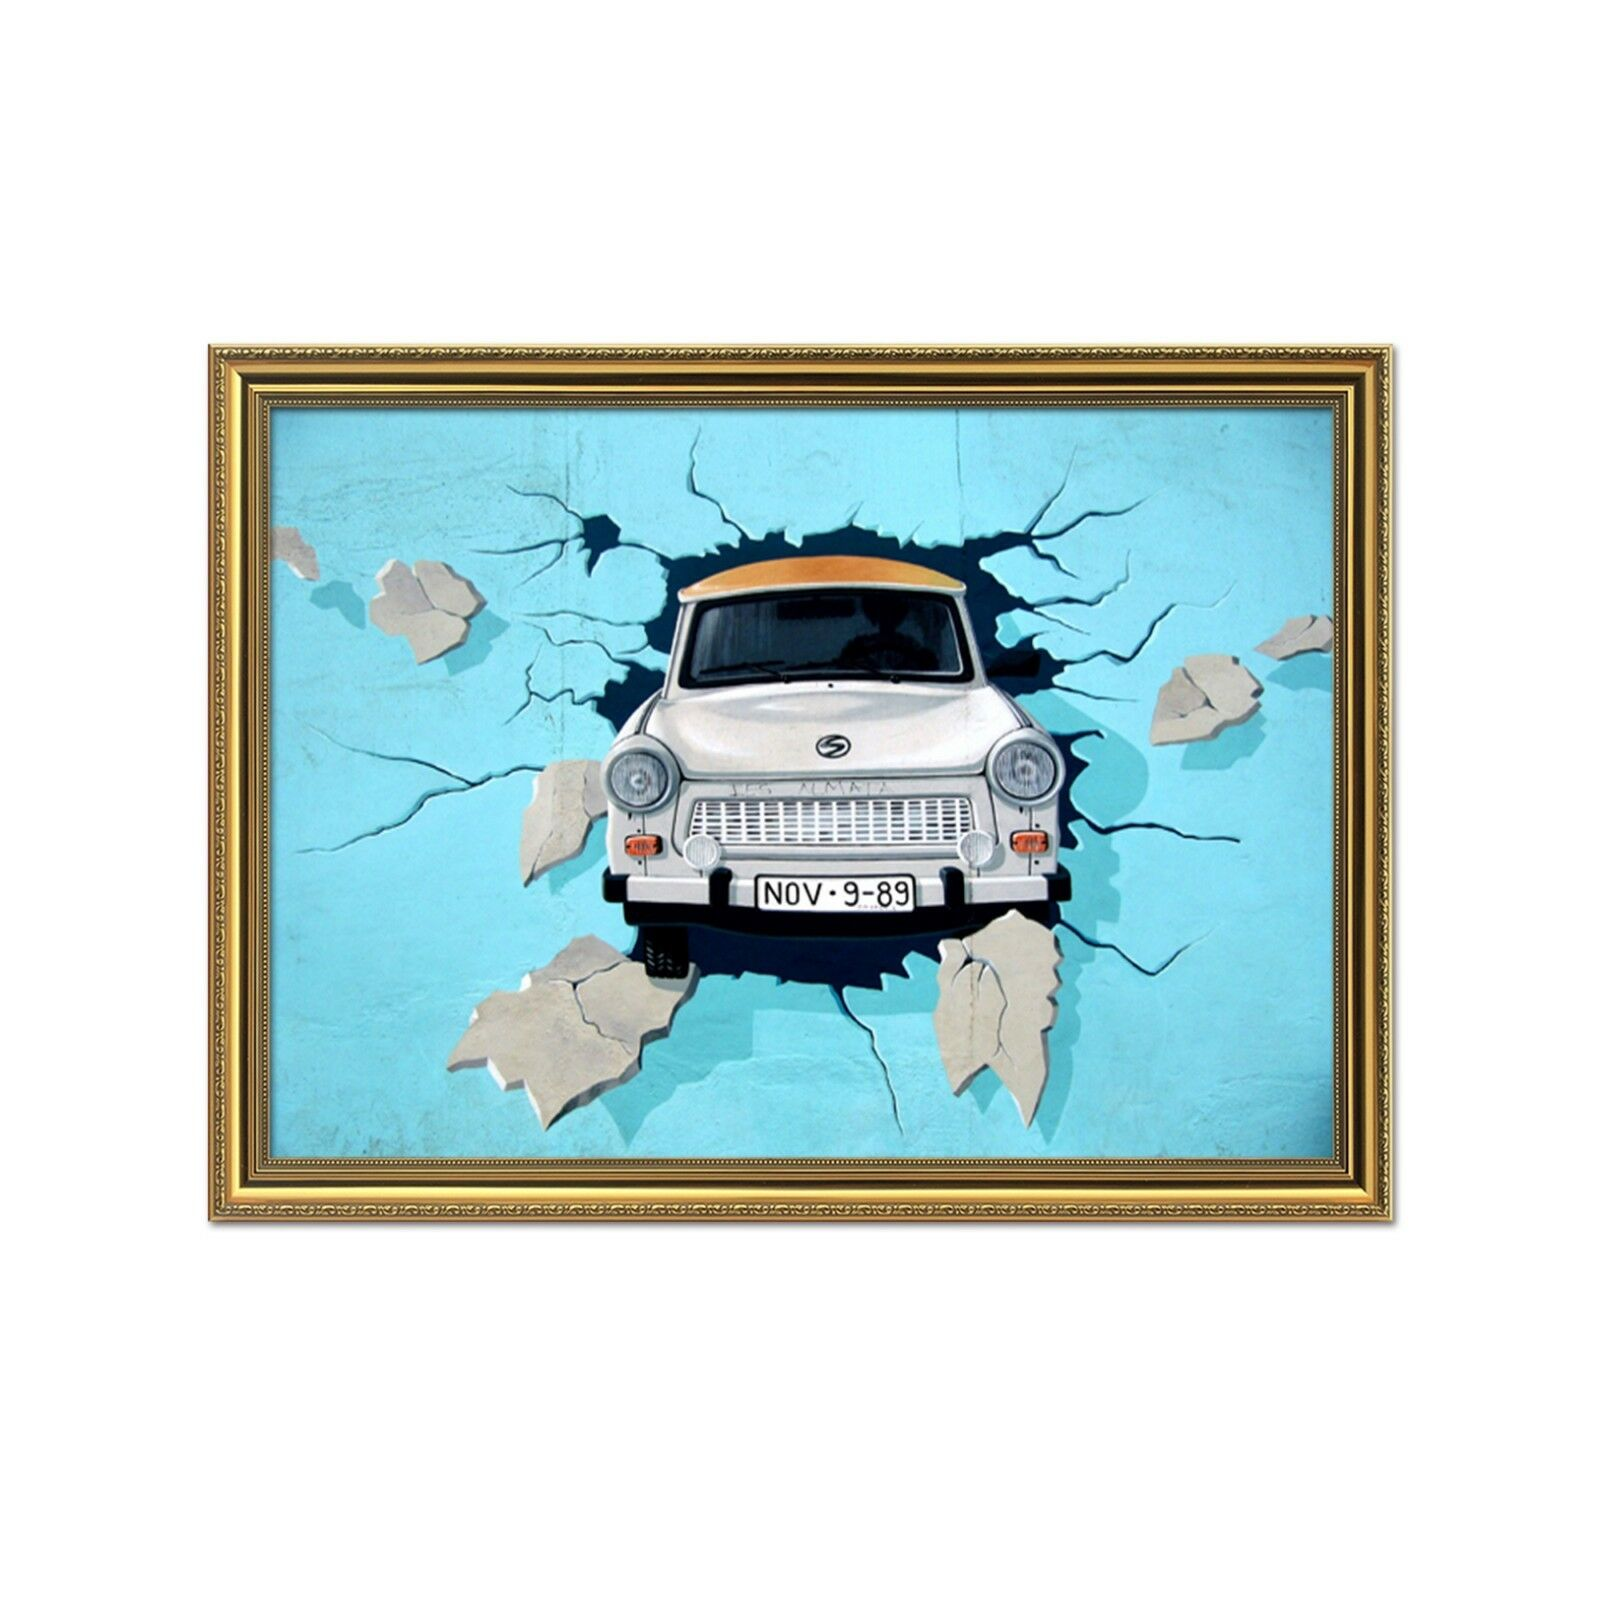 3D Car Broken Wand 511 Framed Poster Home Decor Drucken Painting Kunst AJ WandPapier